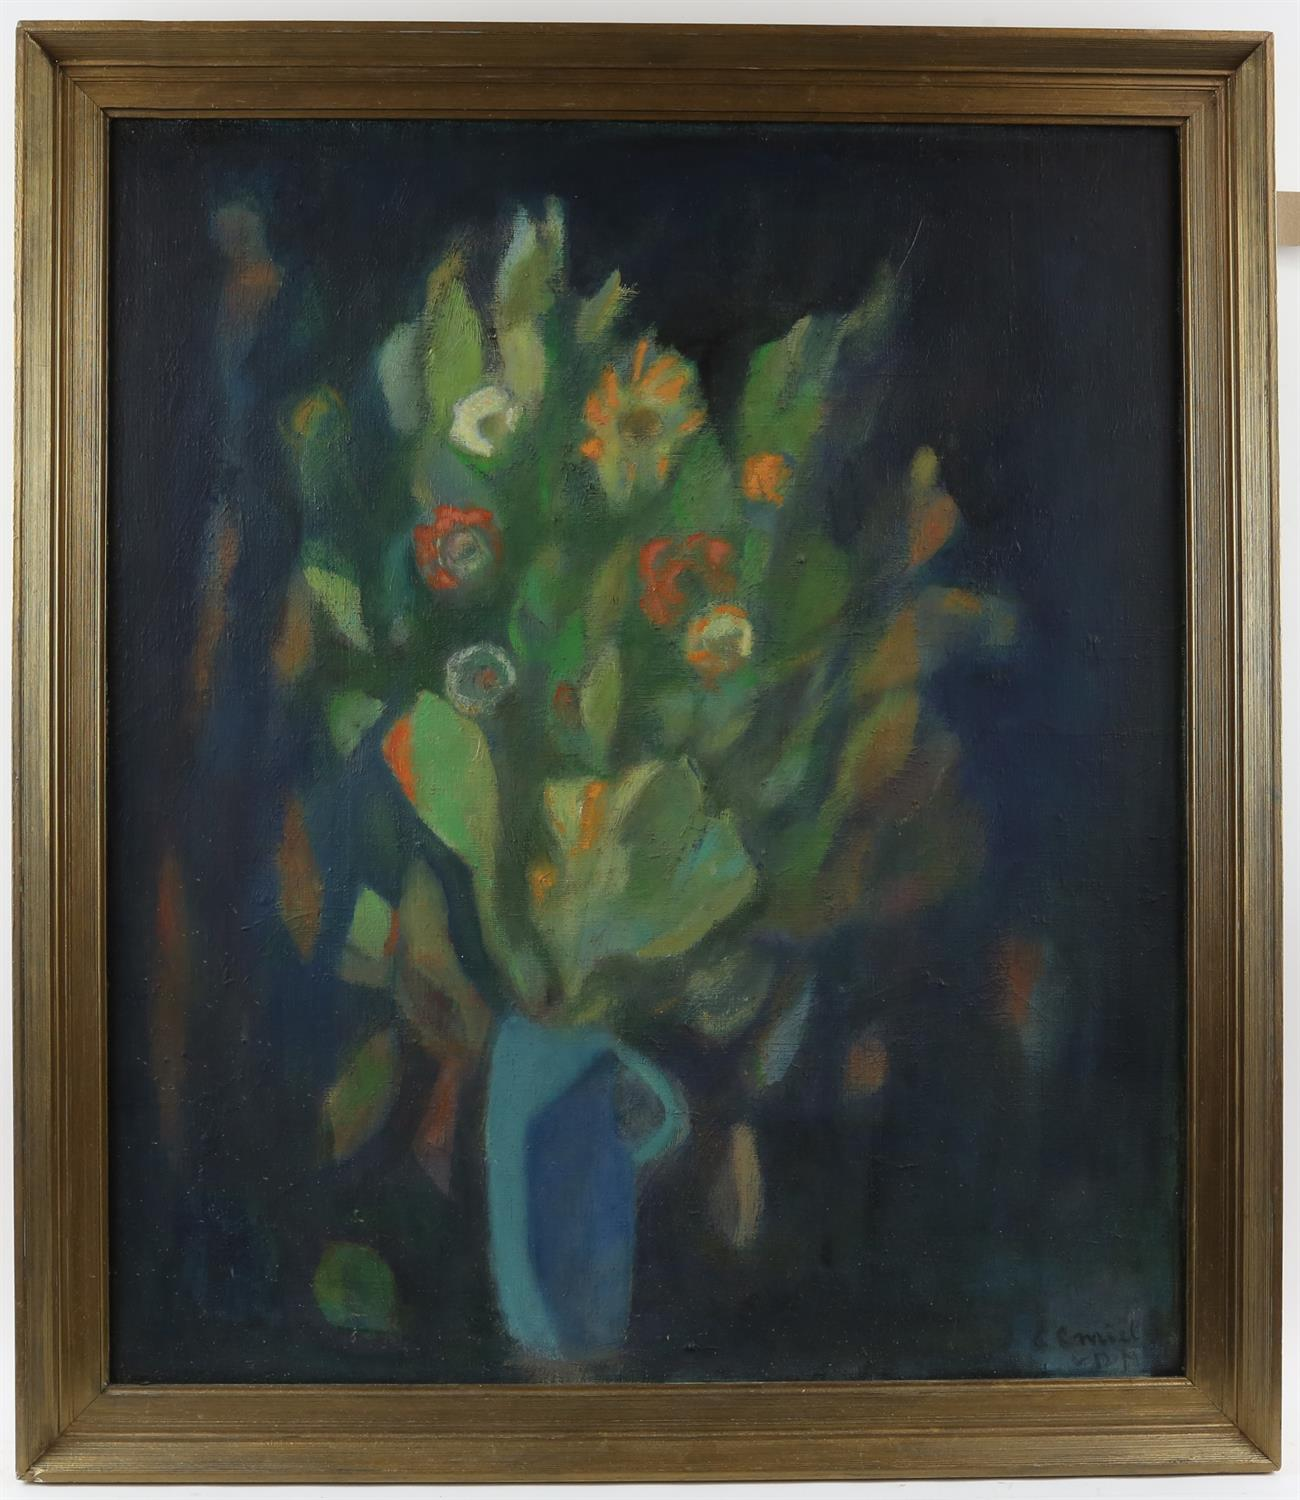 20th century, still-life of flowers in a jug, indistinctly signed, oil on canvas, 68 x 58.5cm, - Image 2 of 3